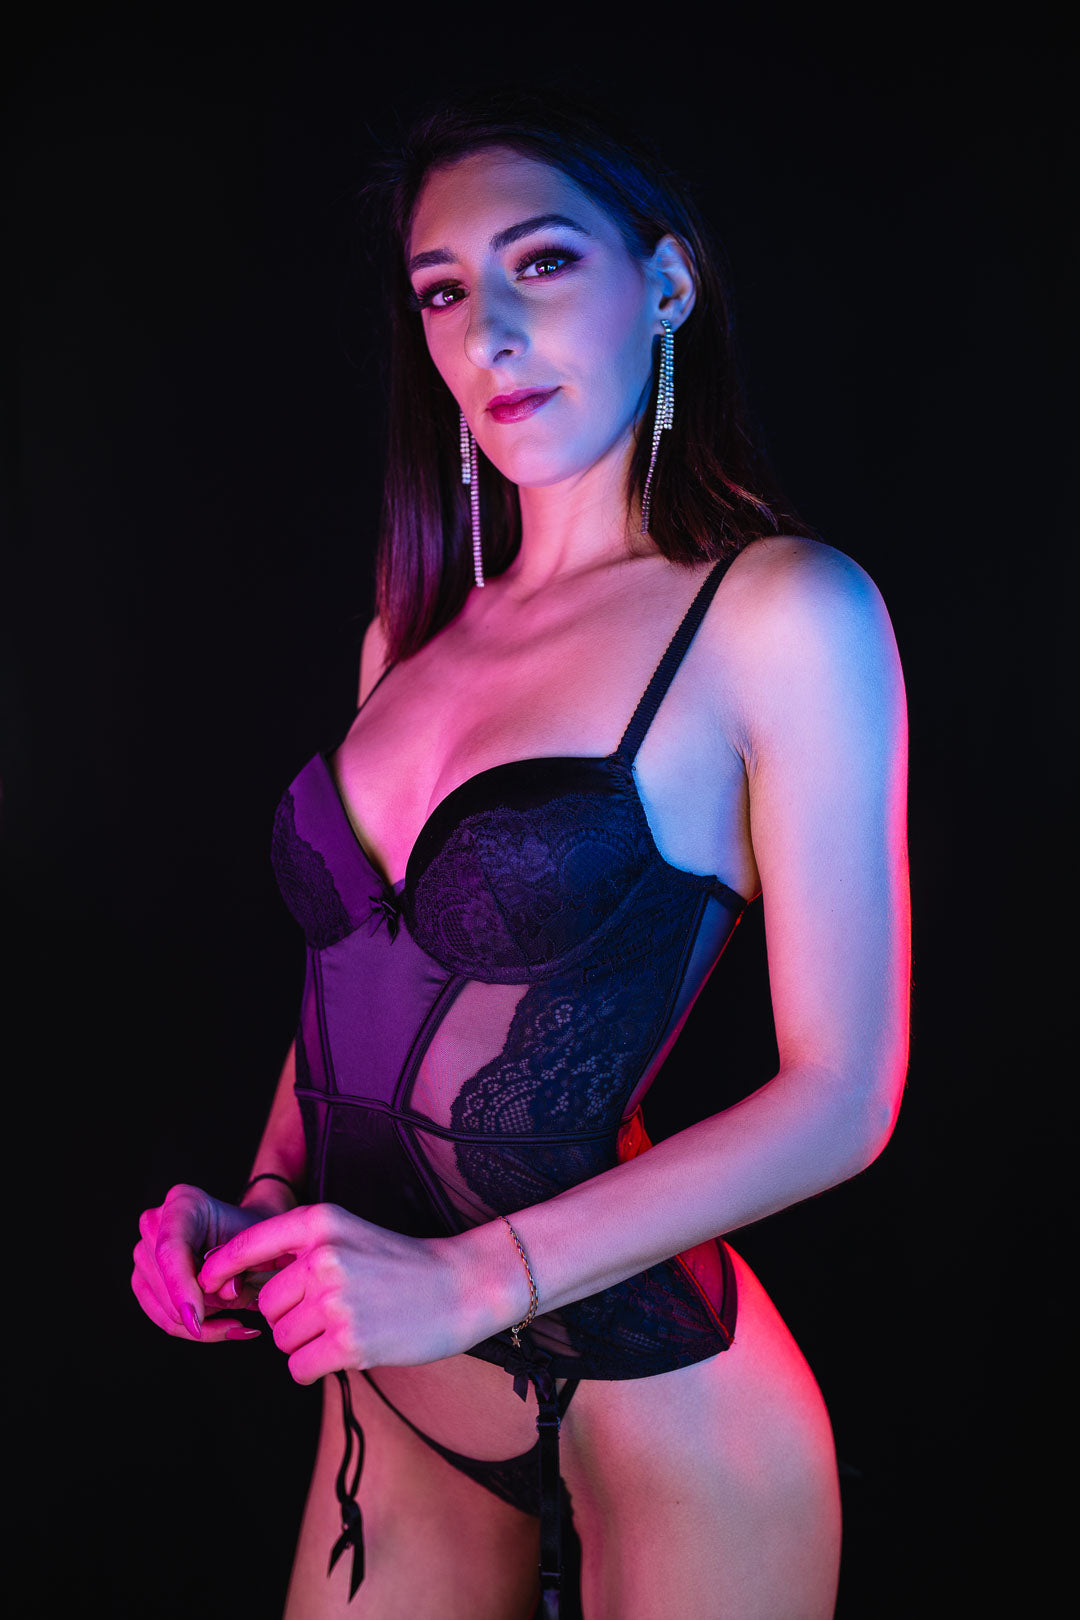 Portrait of a model in corset with neon colors